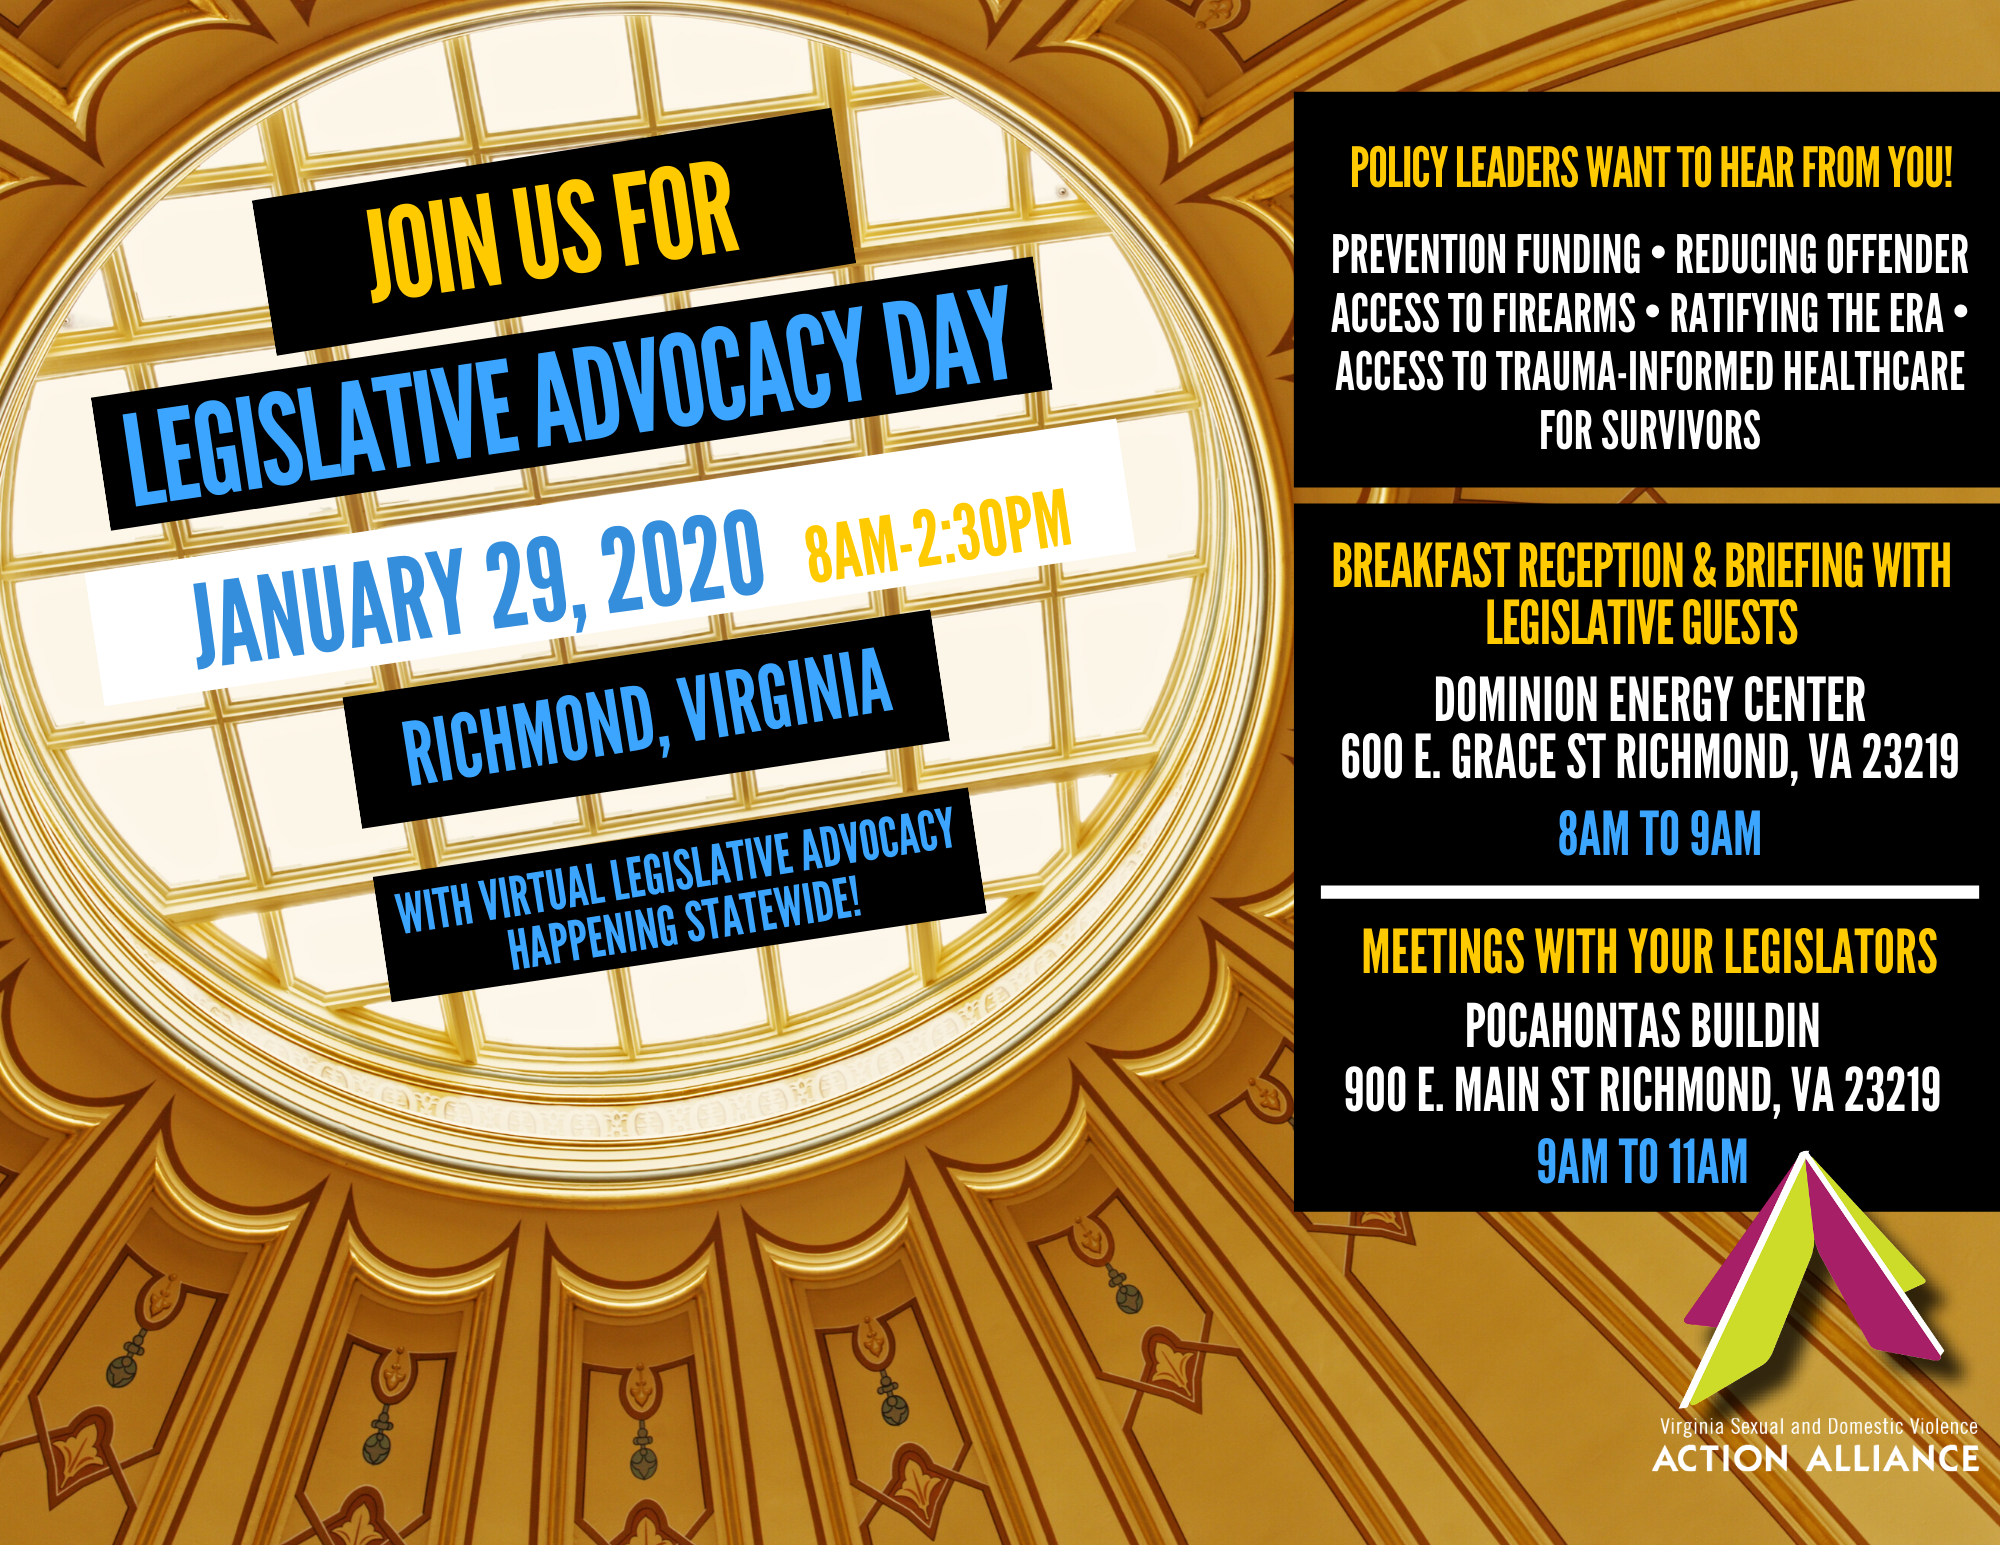 """Looking up at a skylight dome of an ornately decorated hall overlaid with text: """"Join us for Legislative Advocacy Day, January 29, 2020, 8am-2:30pm, Richmond, VA, with virtual legislative advocacy happening statewide!"""""""